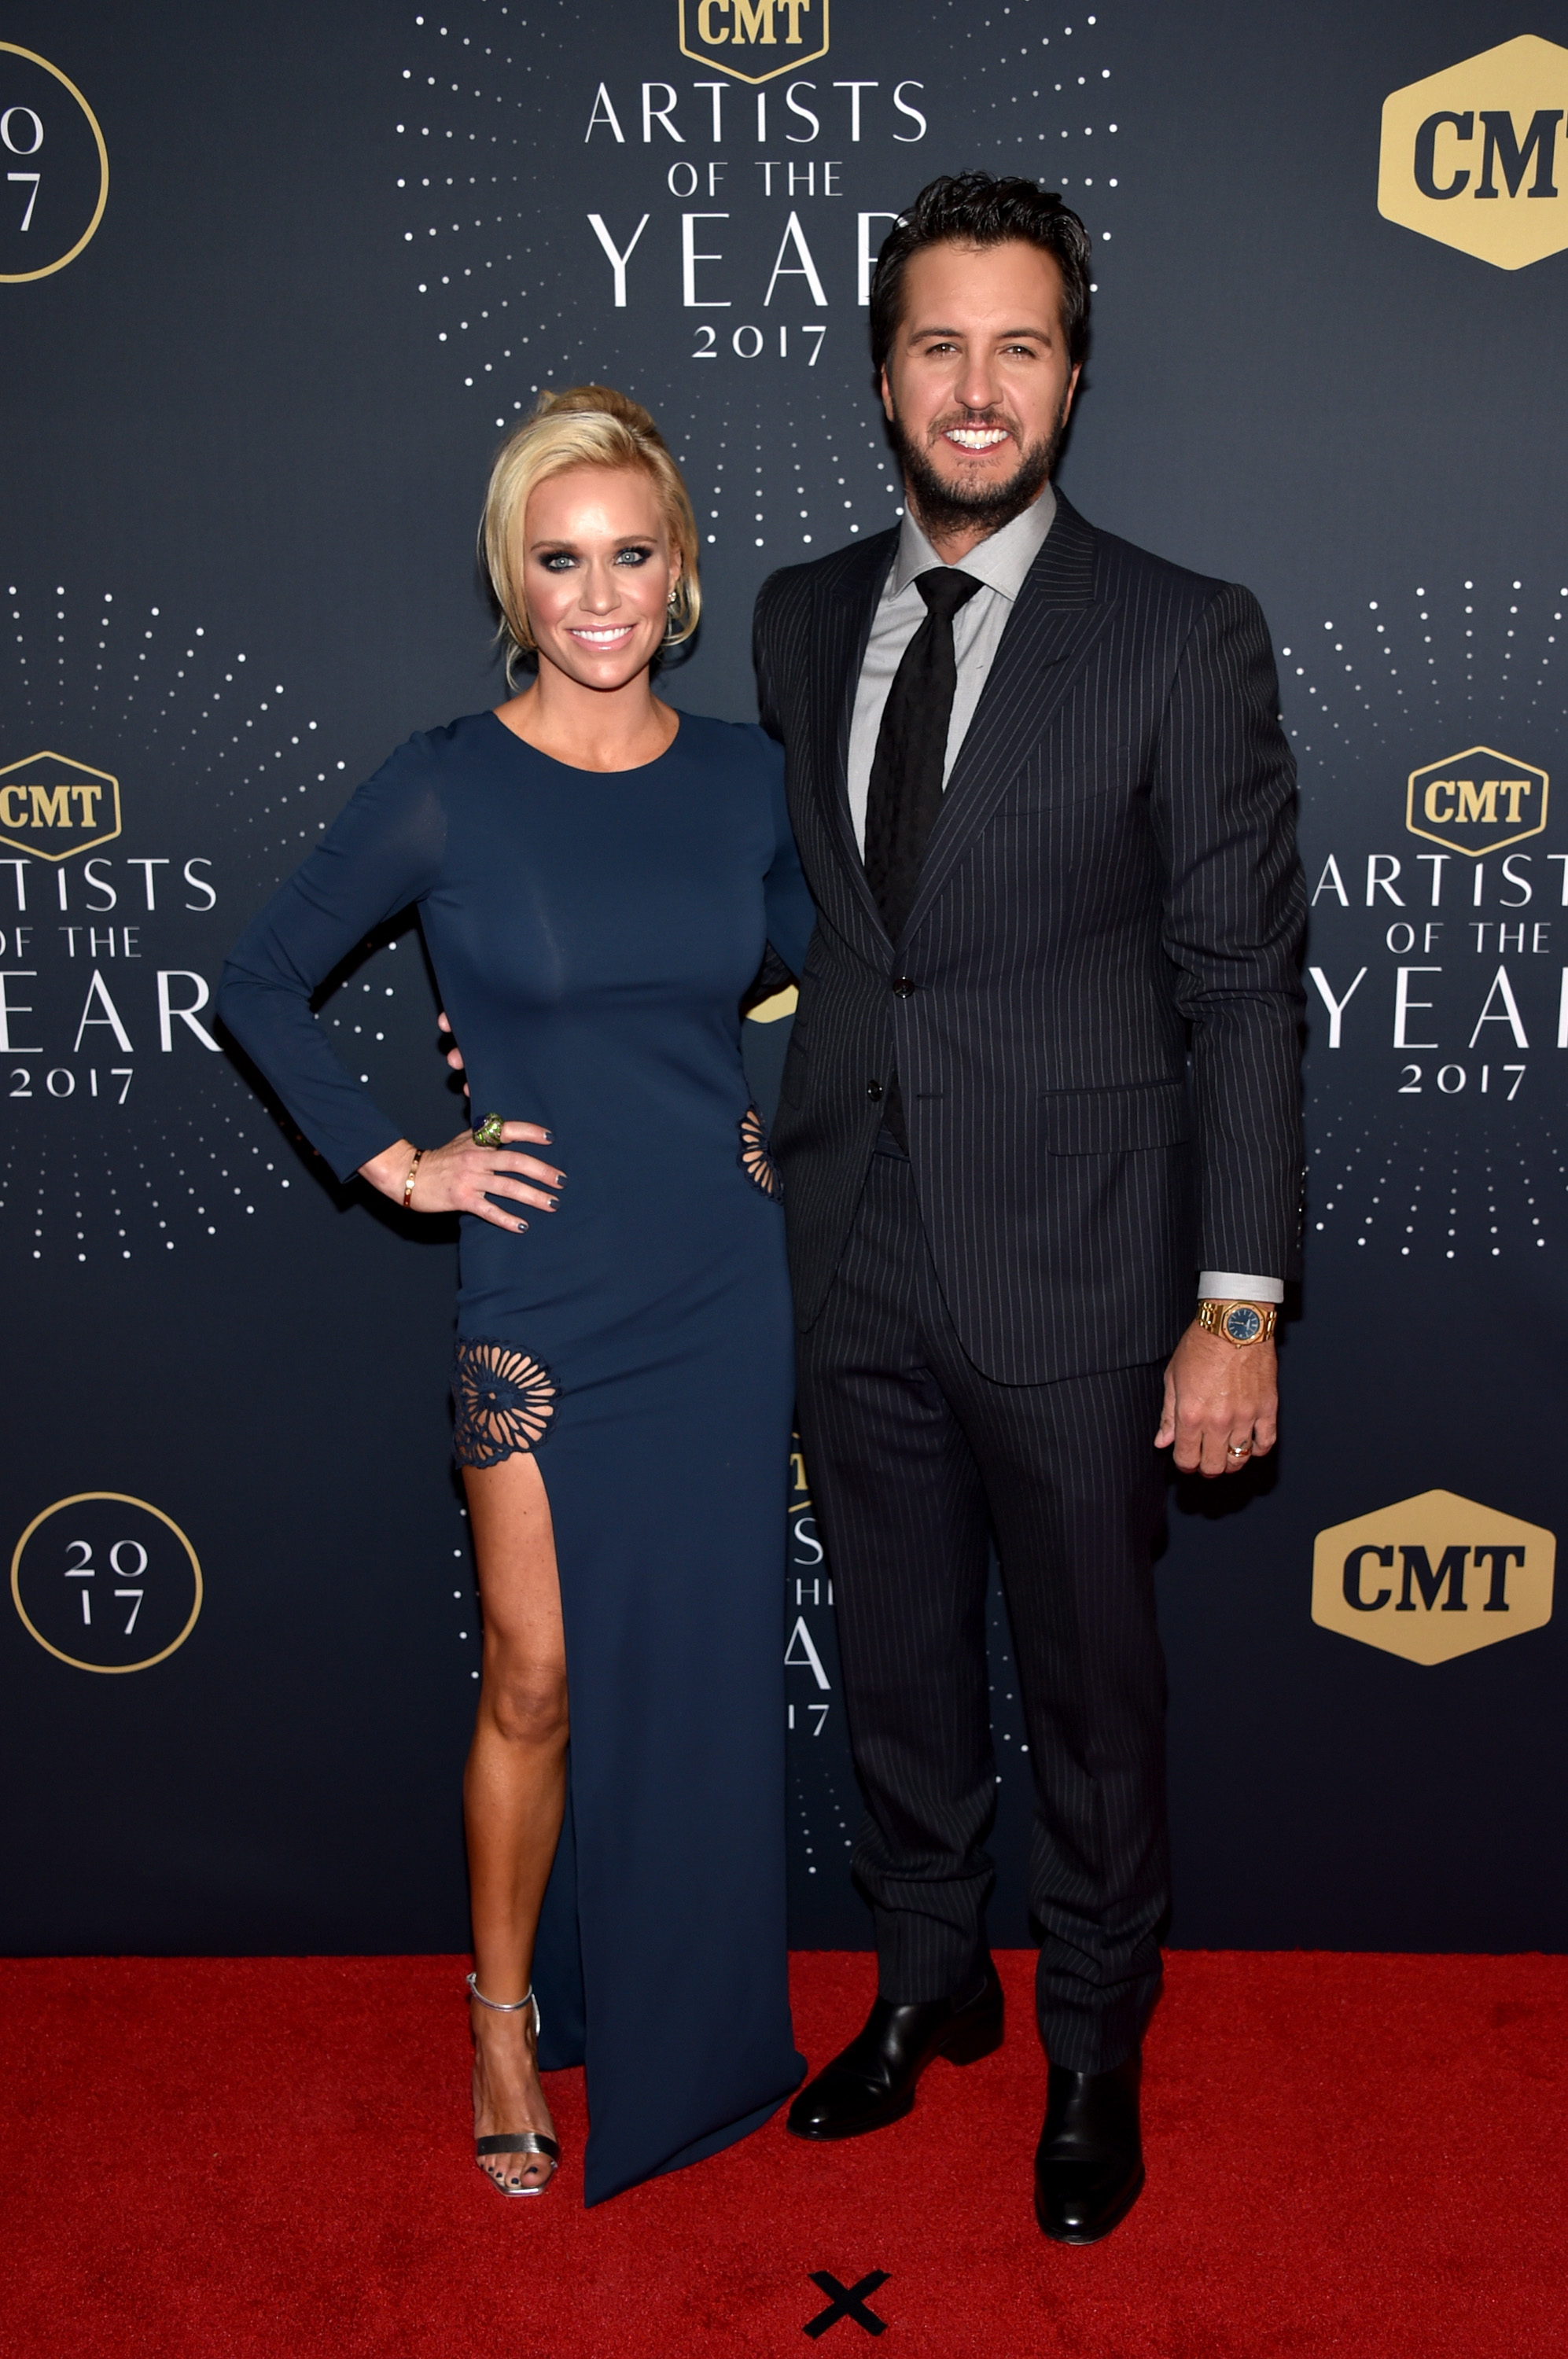 Luke Bryan and wife Caroline Boyer; Photo by John Shearer/Getty Images for CMT